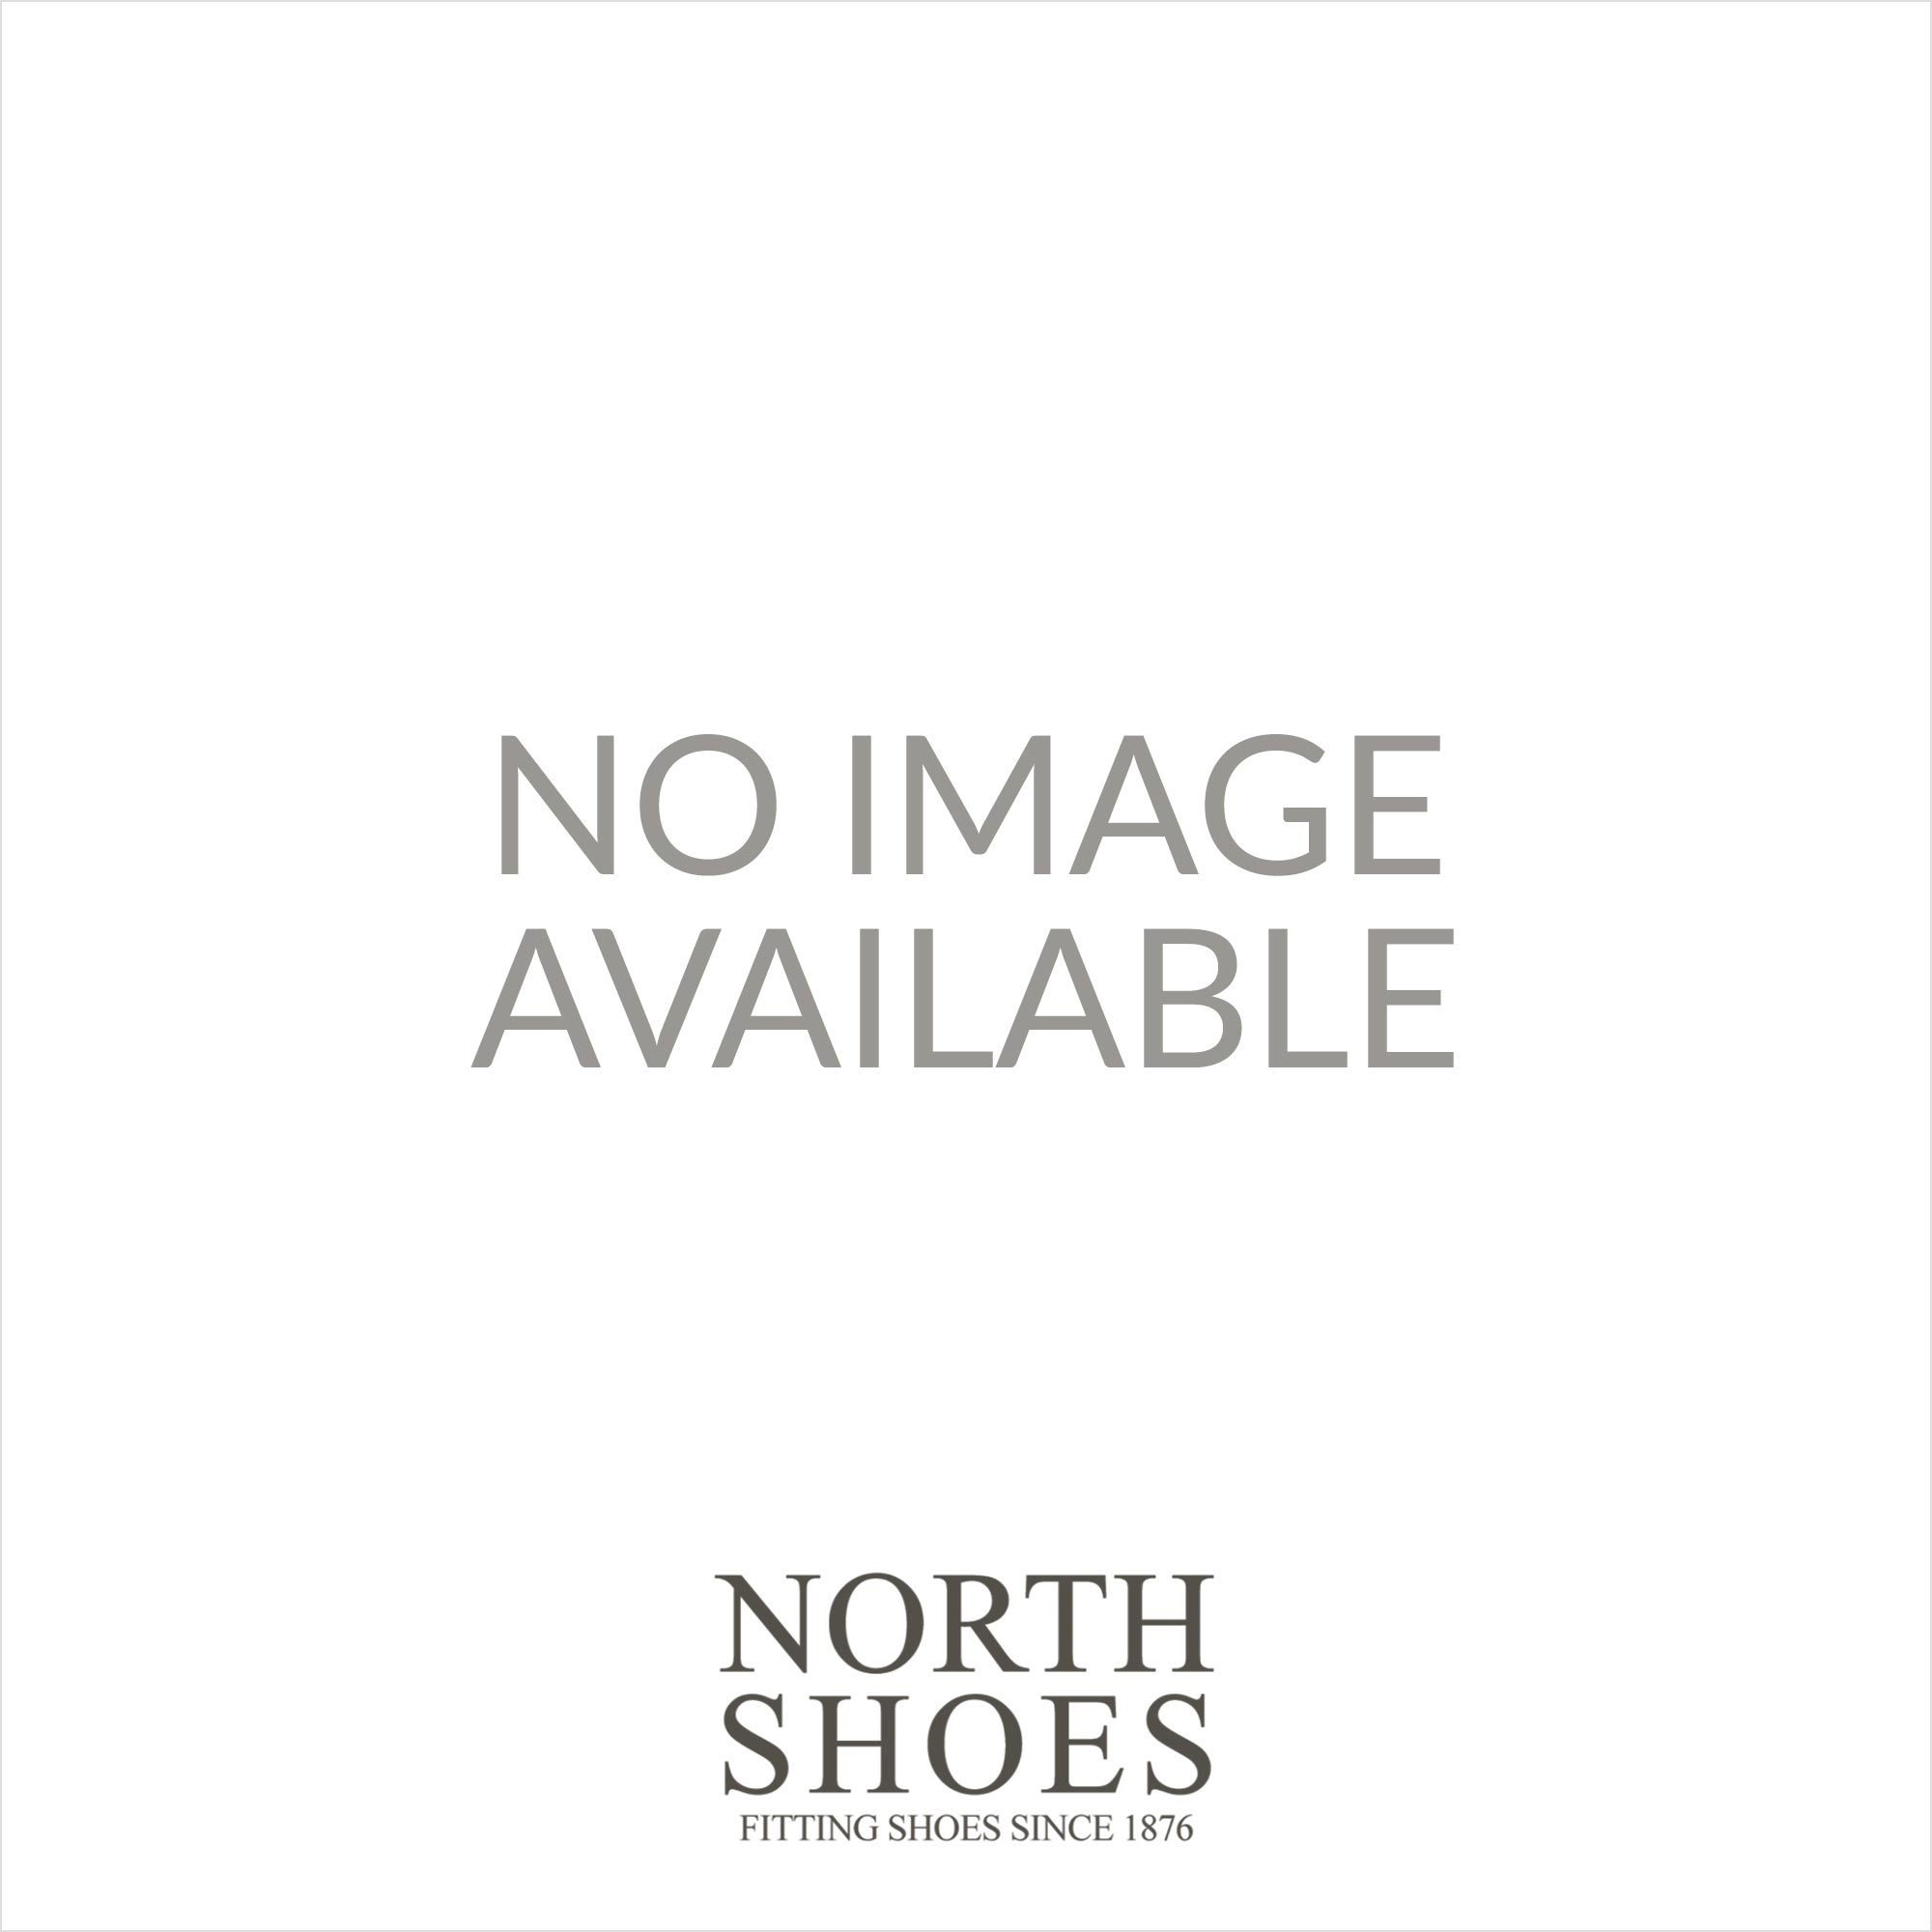 bbfb4e02e7d Clarks Clovelly Sun Denim Womens Shoe - Clarks from North Shoes UK